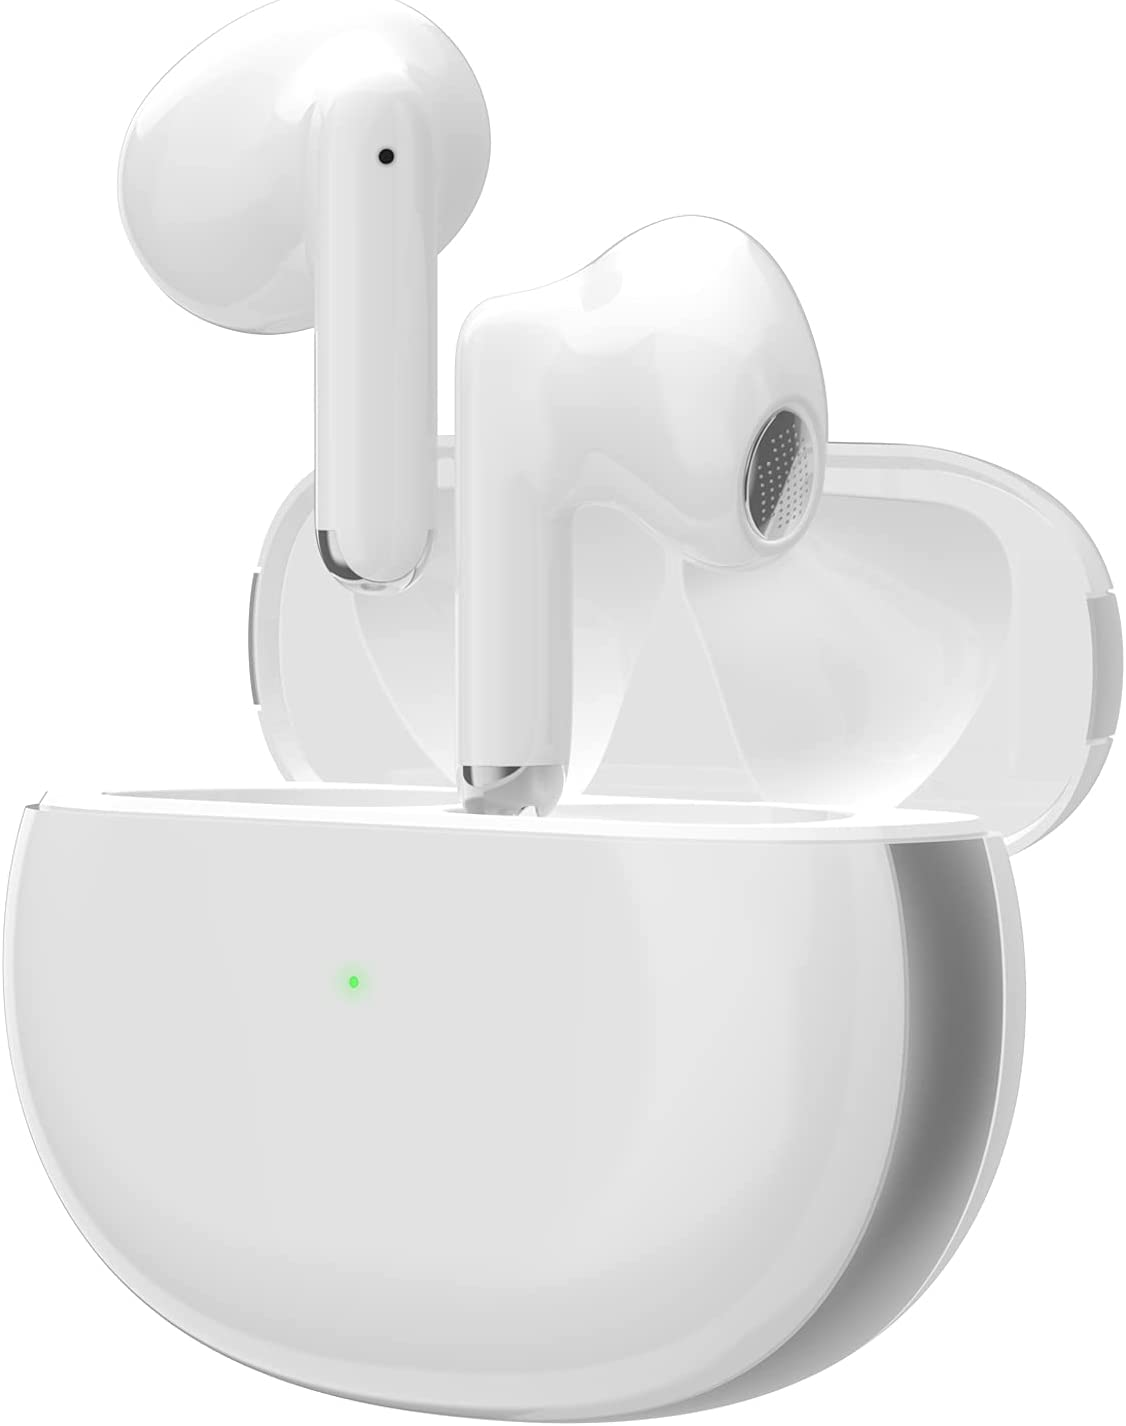 LBZJ Wireless Earbuds Bluetooth 5.2 Headphones with Noise Reduction, Built in Mic Earpods IPX5 Waterproof Headset with Charging Case Air Buds in-Ear Ear Buds Stereo Earphones for iPhone/Android